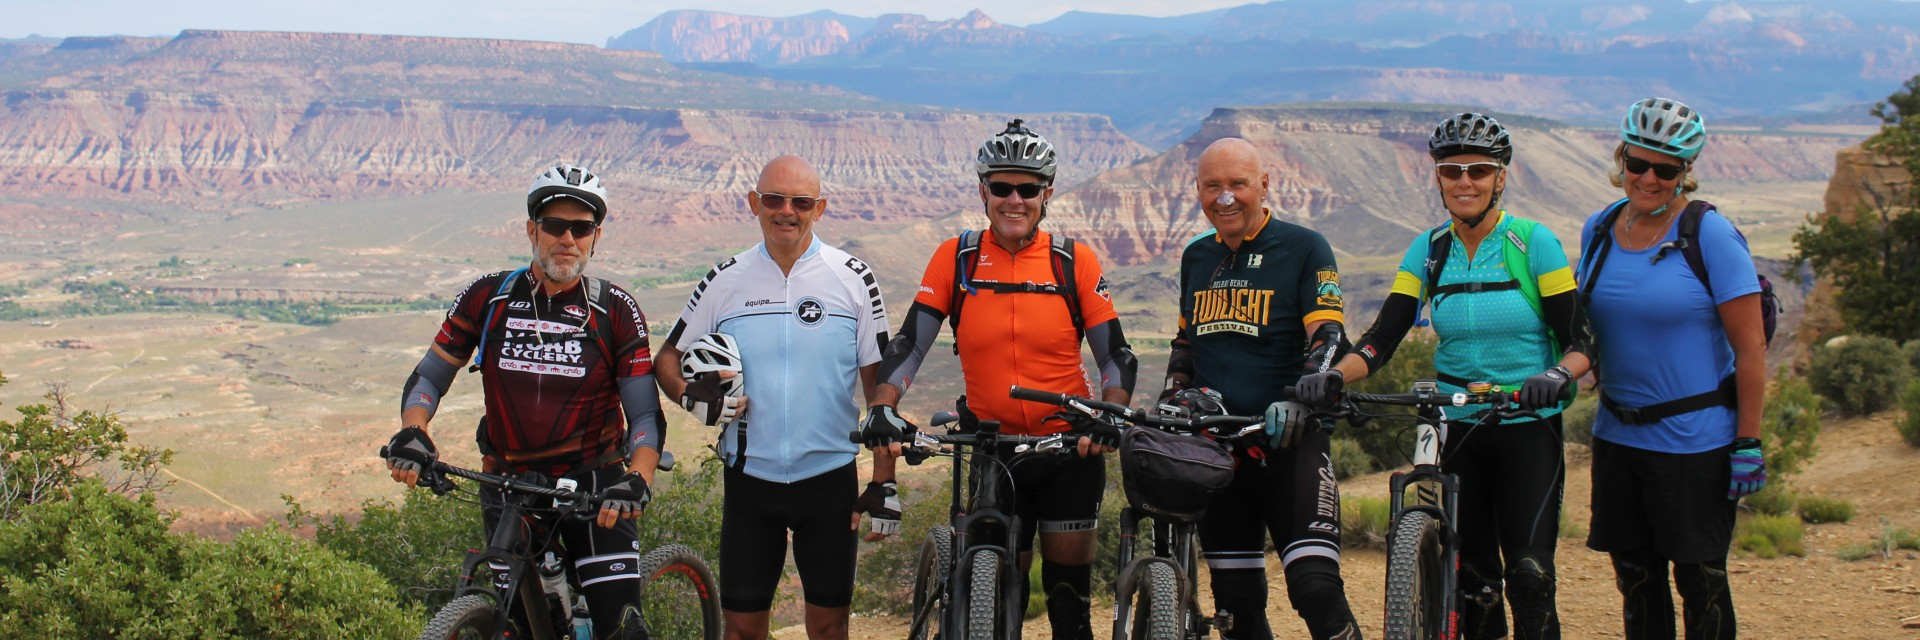 Happy mountain bikers pose on the Rainbow Rim Trail during their guided tour along the North Rim of the Grand Canyon